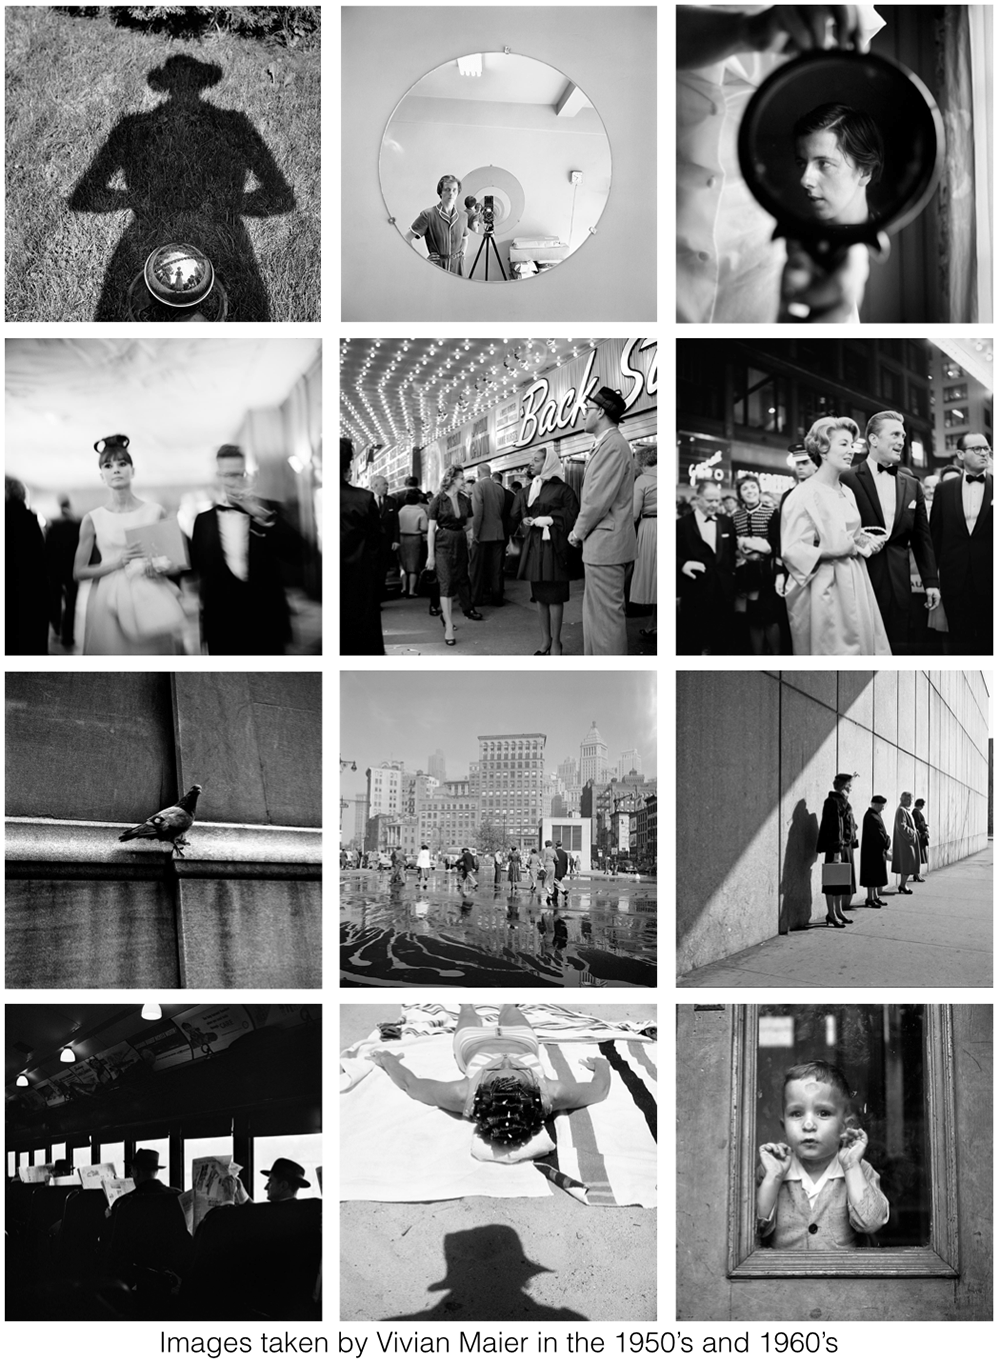 Vivian Maier images 50s and 60s